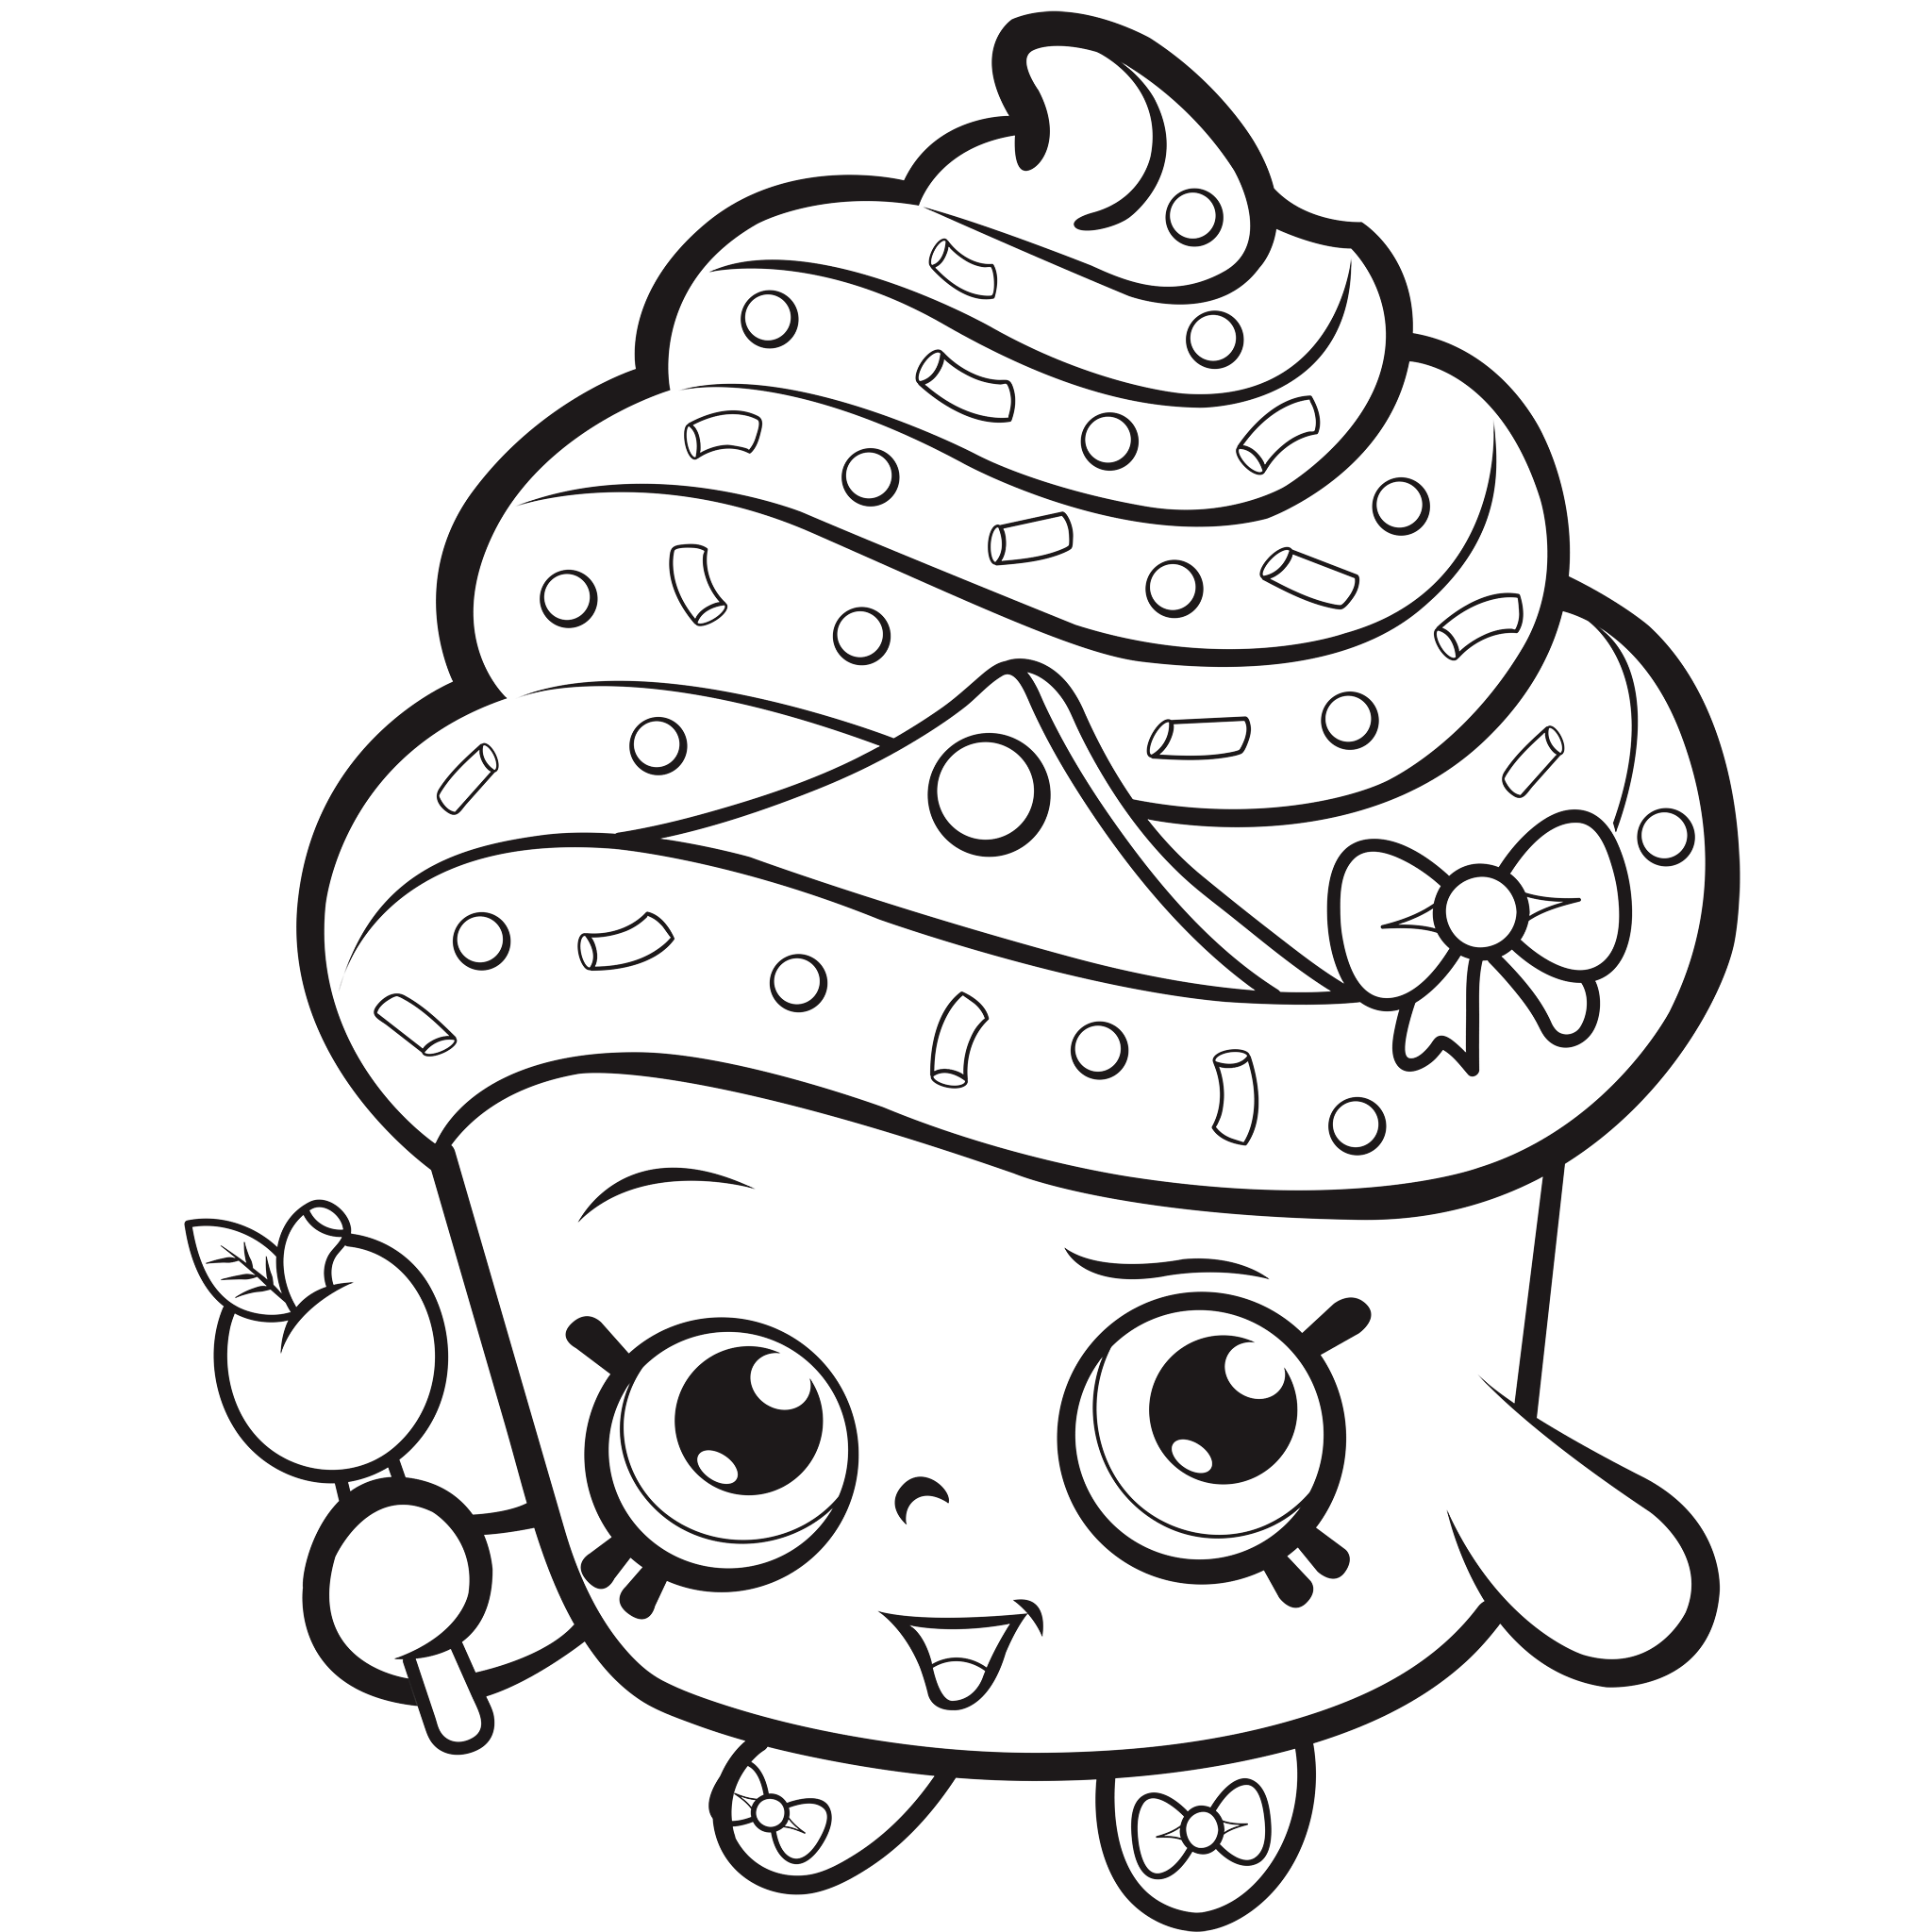 Shopkins Coloring Pages Coloring Pages For Kids Pinterest